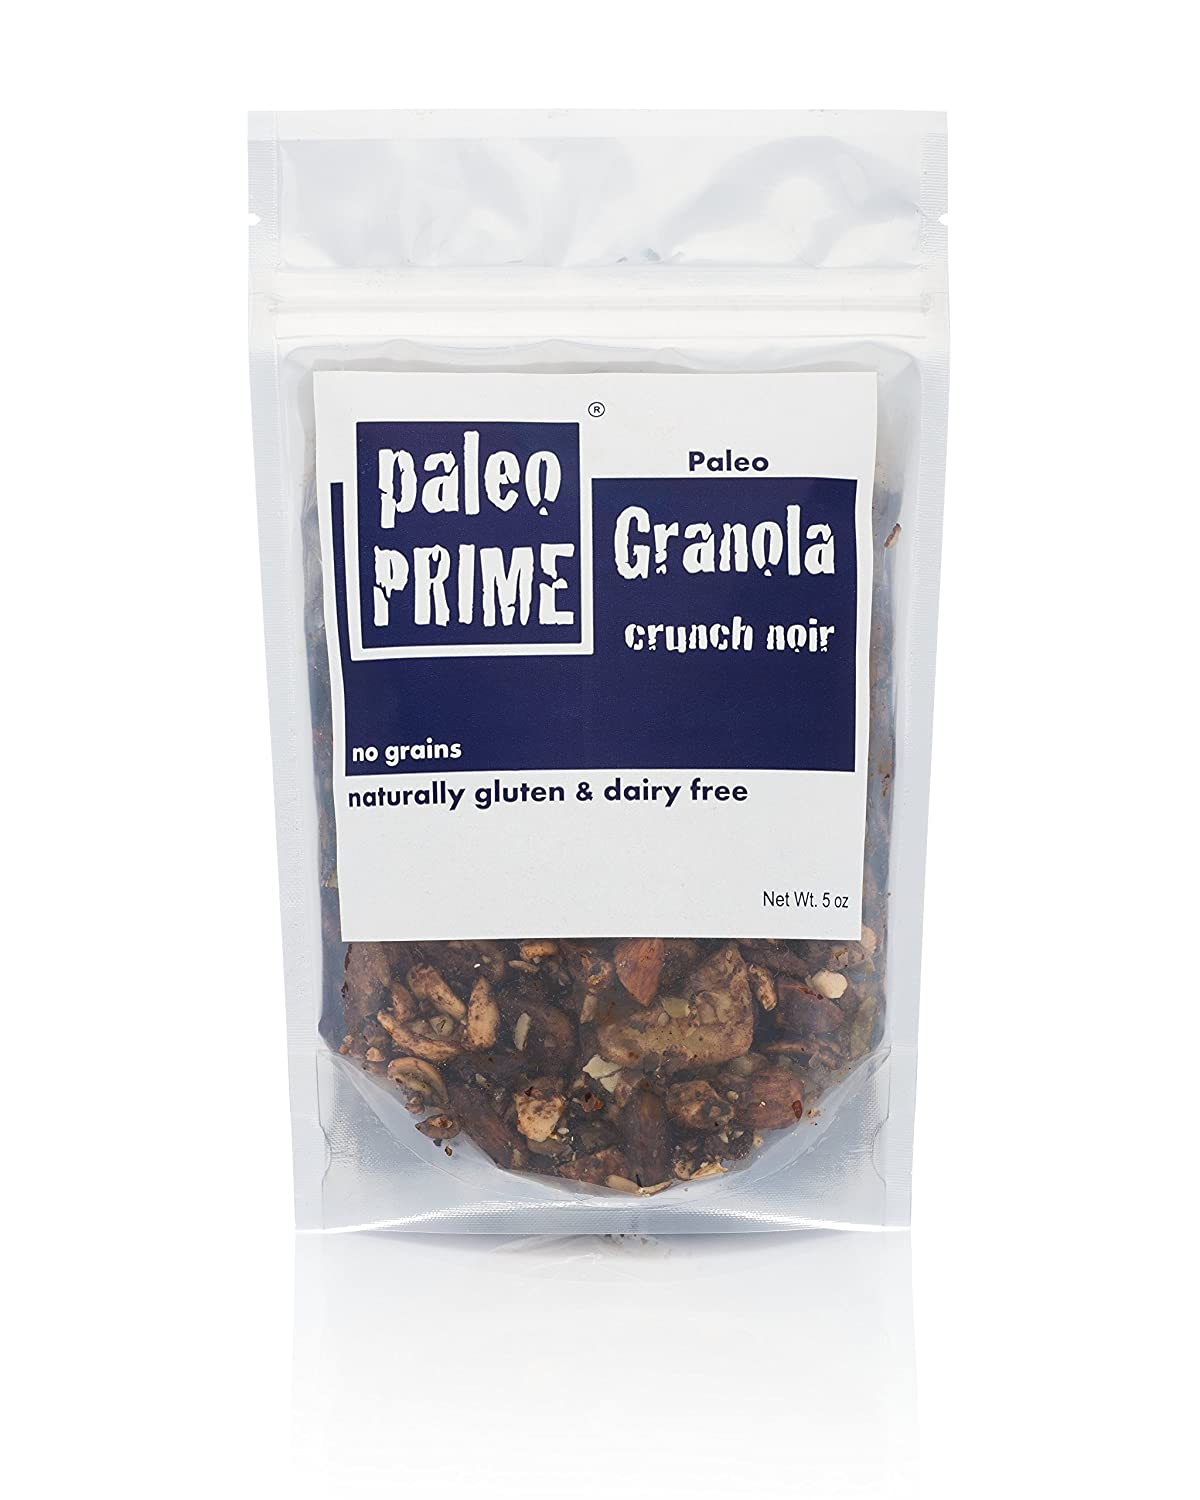 Paleo Granola By Paleo Prime автомобиль iphone 6 plus iphone 6 iphone 5s iphone 5 iphone 5c универсальный iphone 4 4s мобильный телефон iphone 3g 3gs держатель